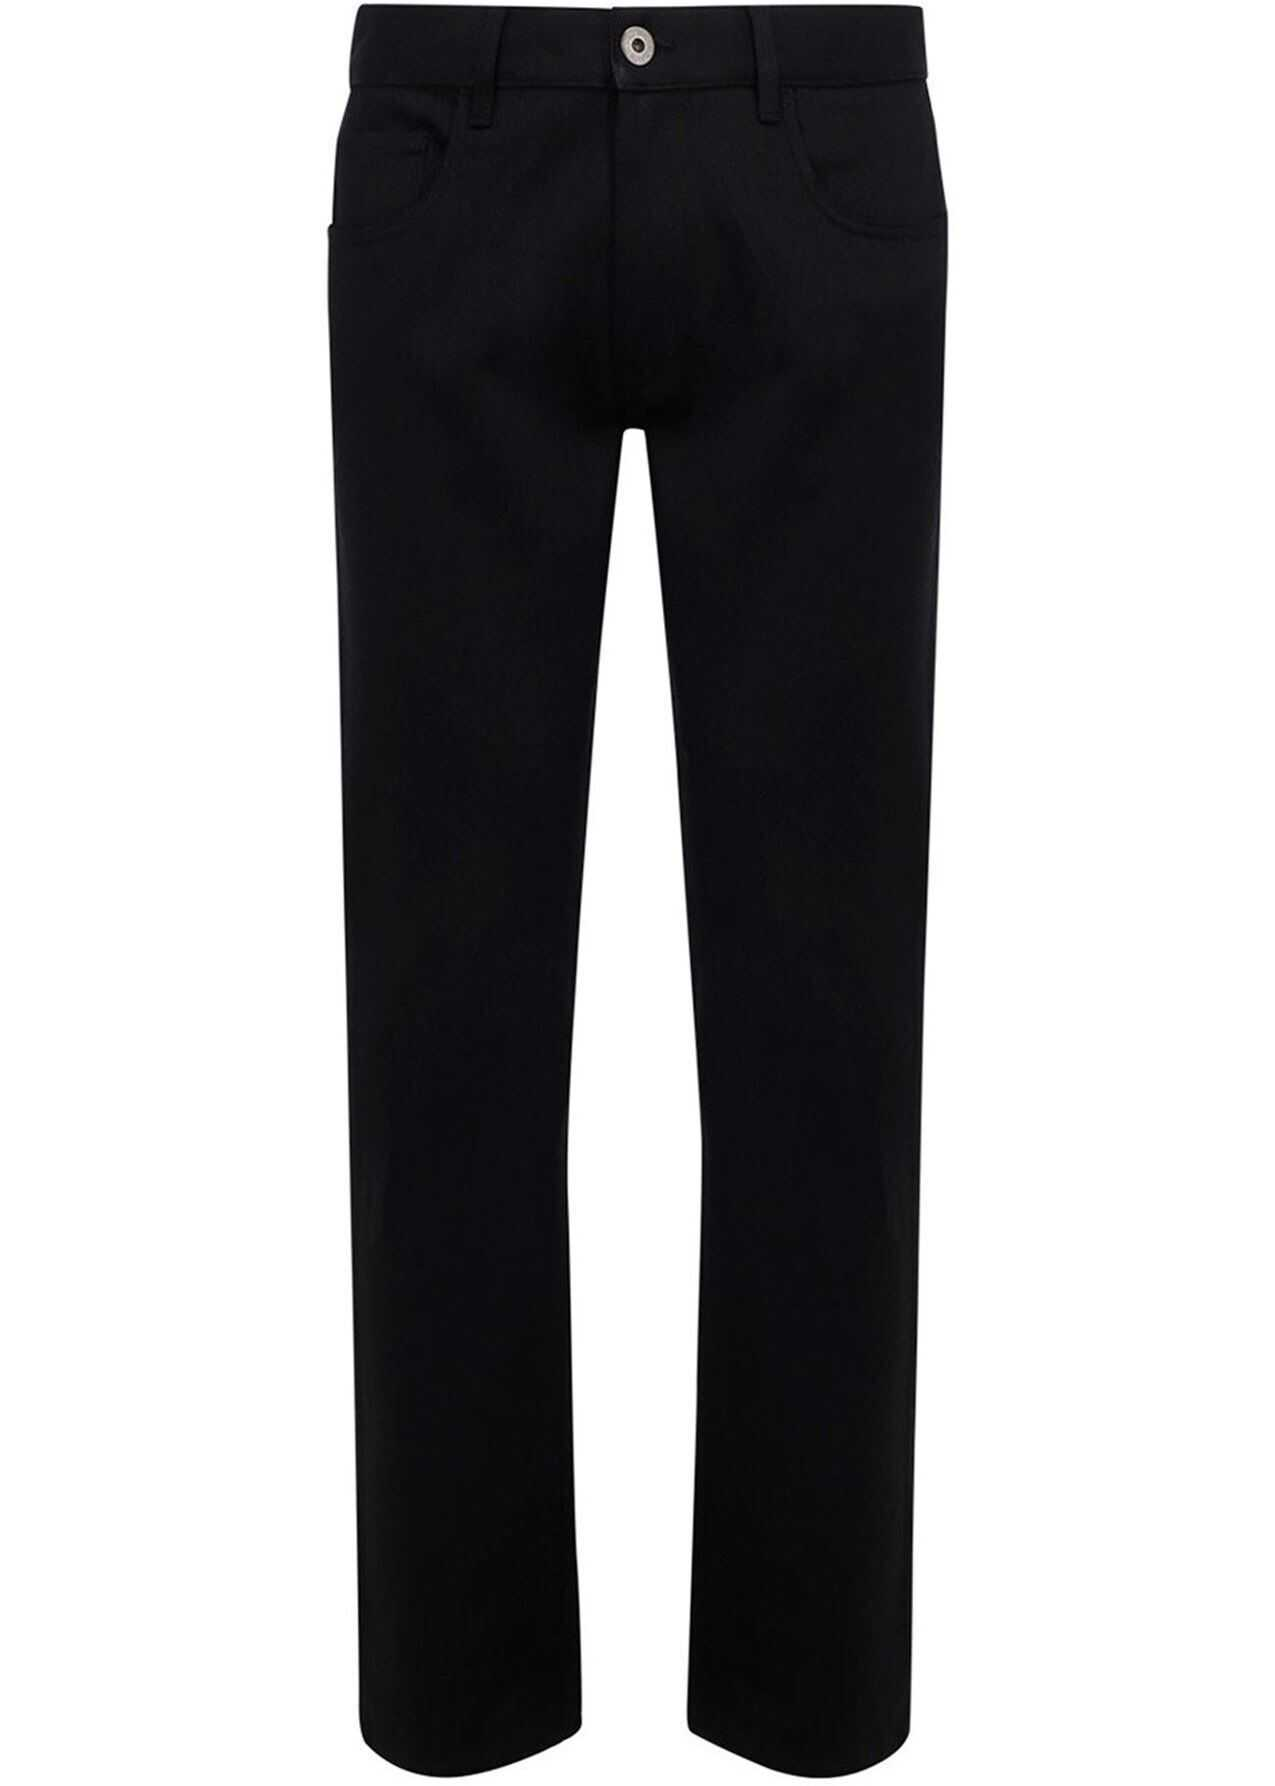 Prada Stretch Denim Jeans In Black Black imagine